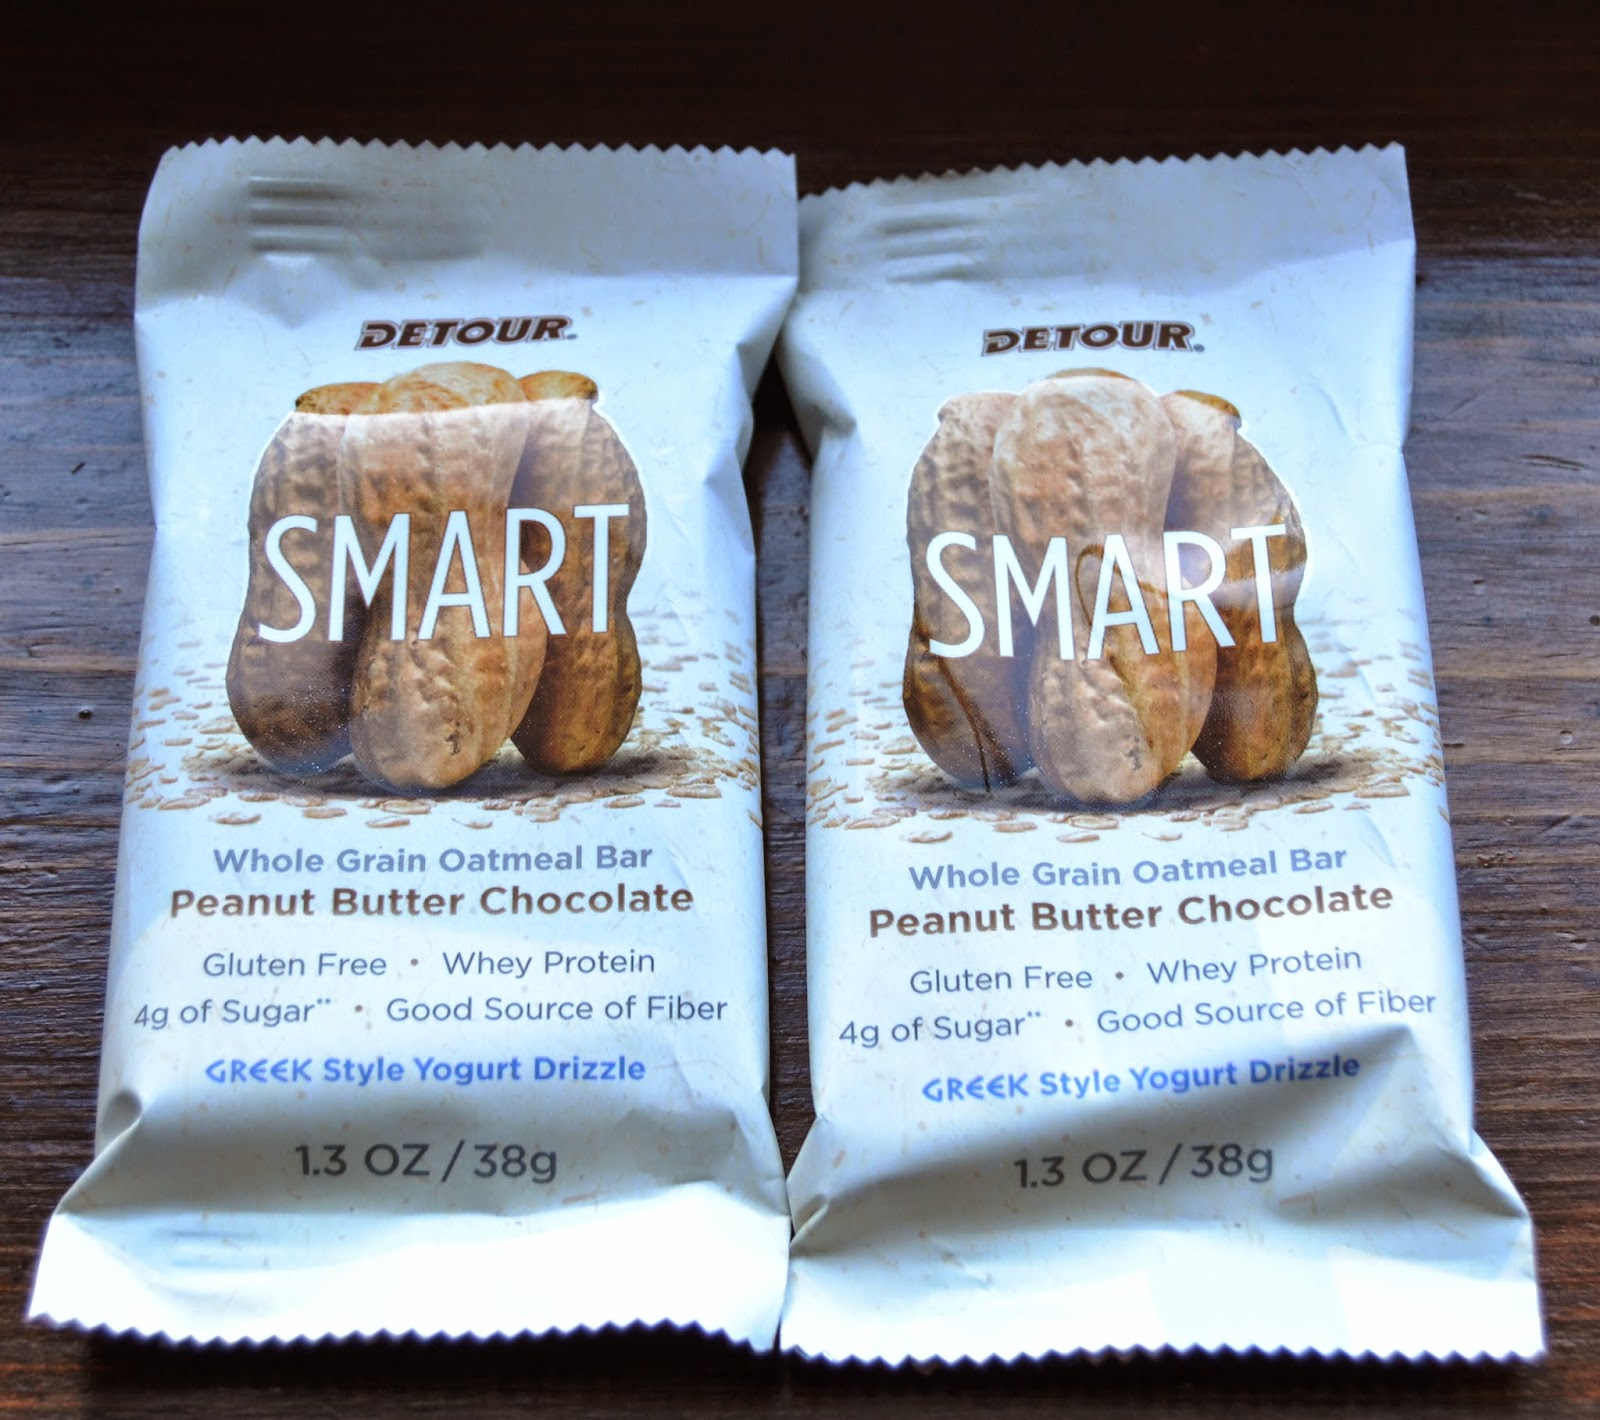 Detour Smart Peanut Butter Chocolate Bars